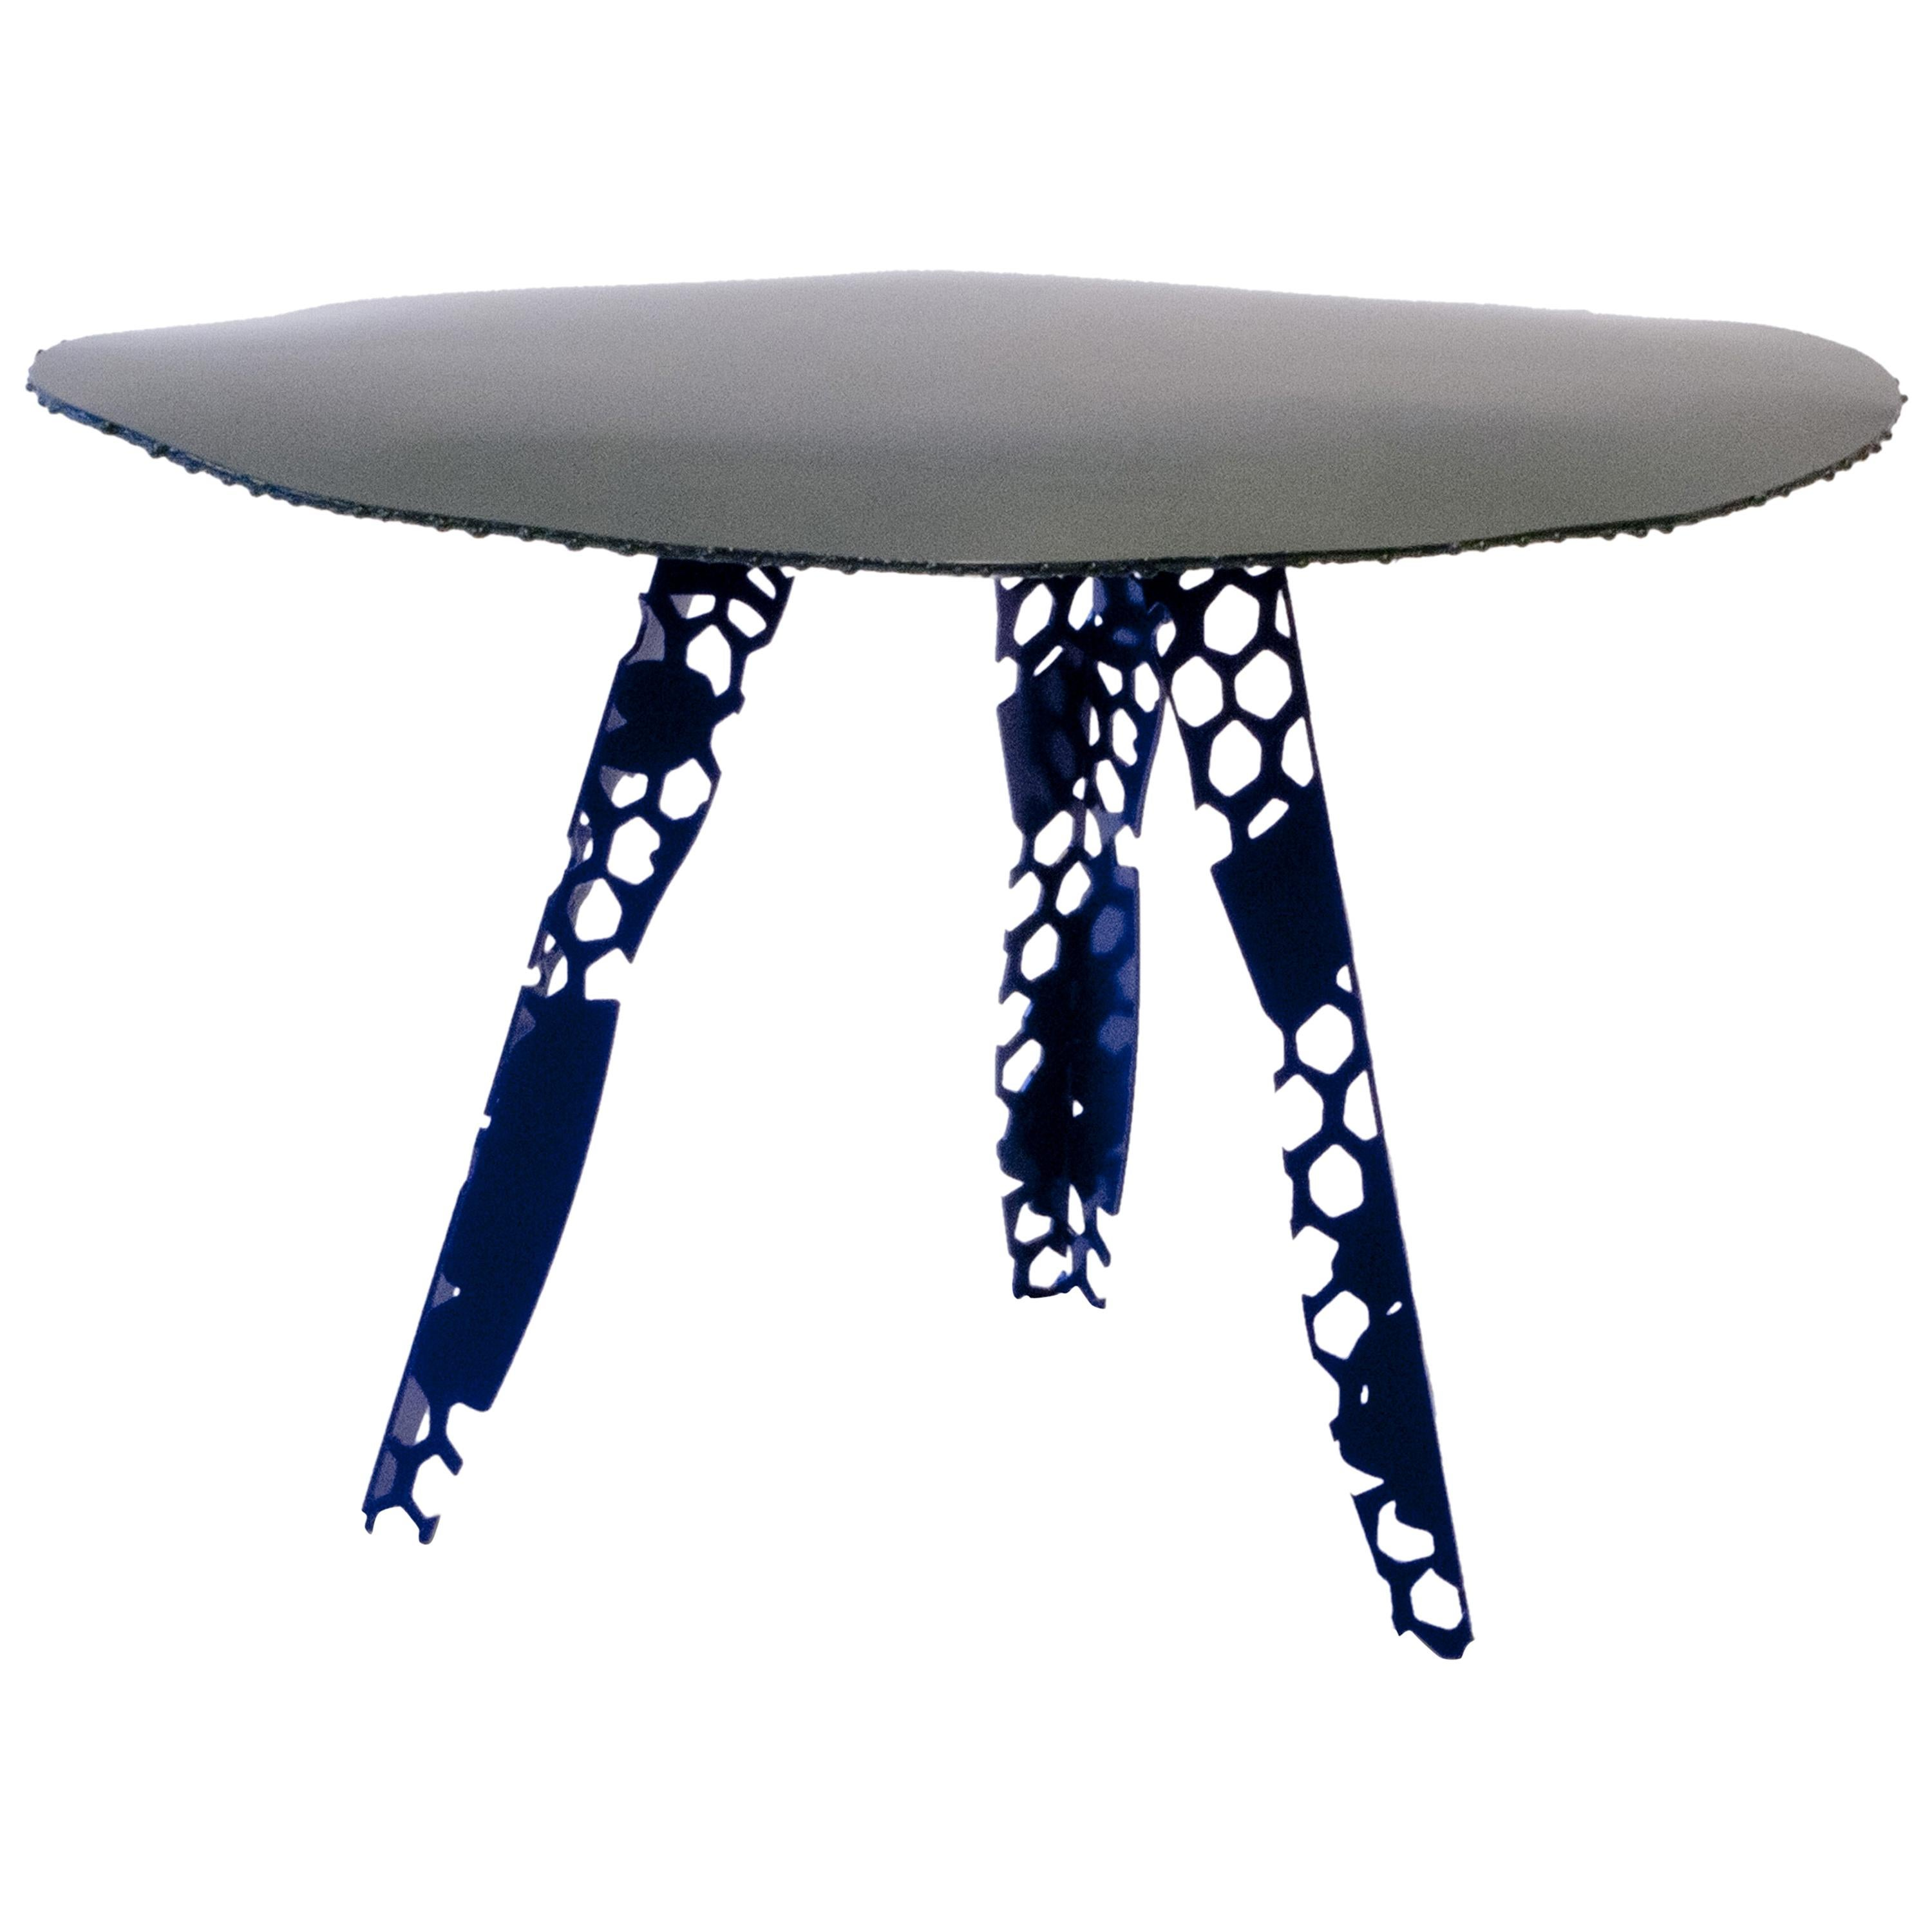 Textile Sketch side Table